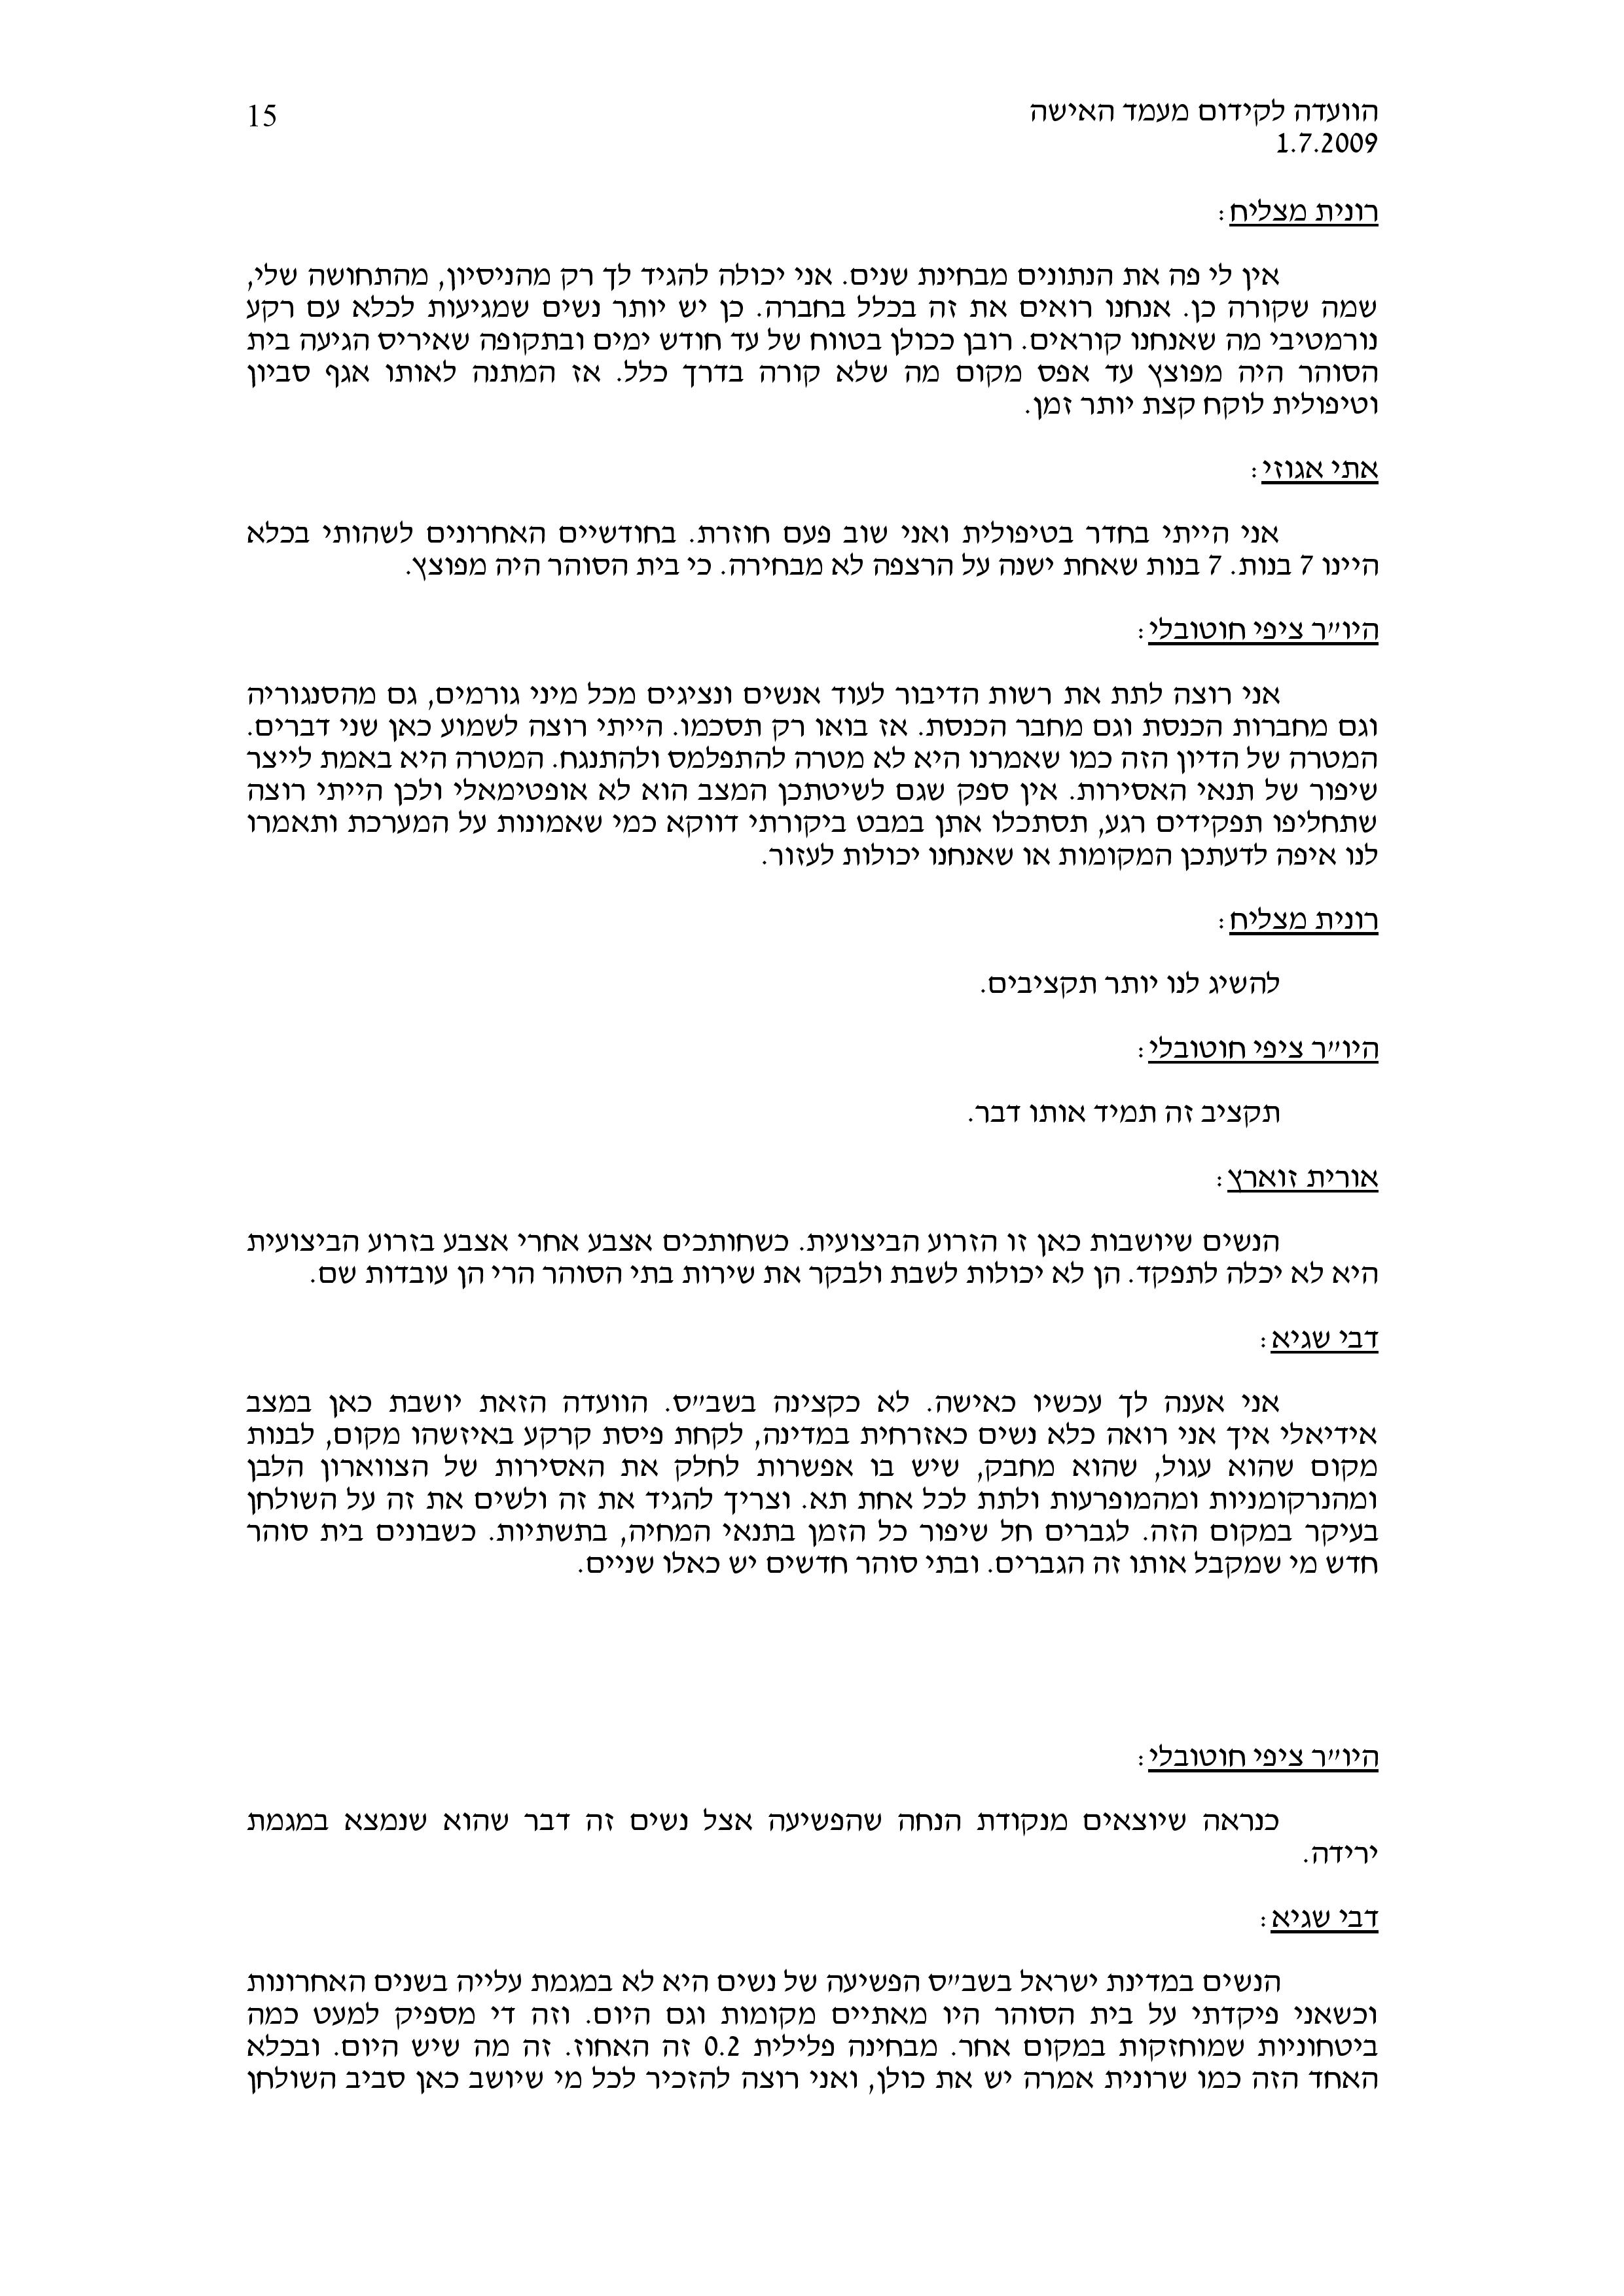 Document-page-015